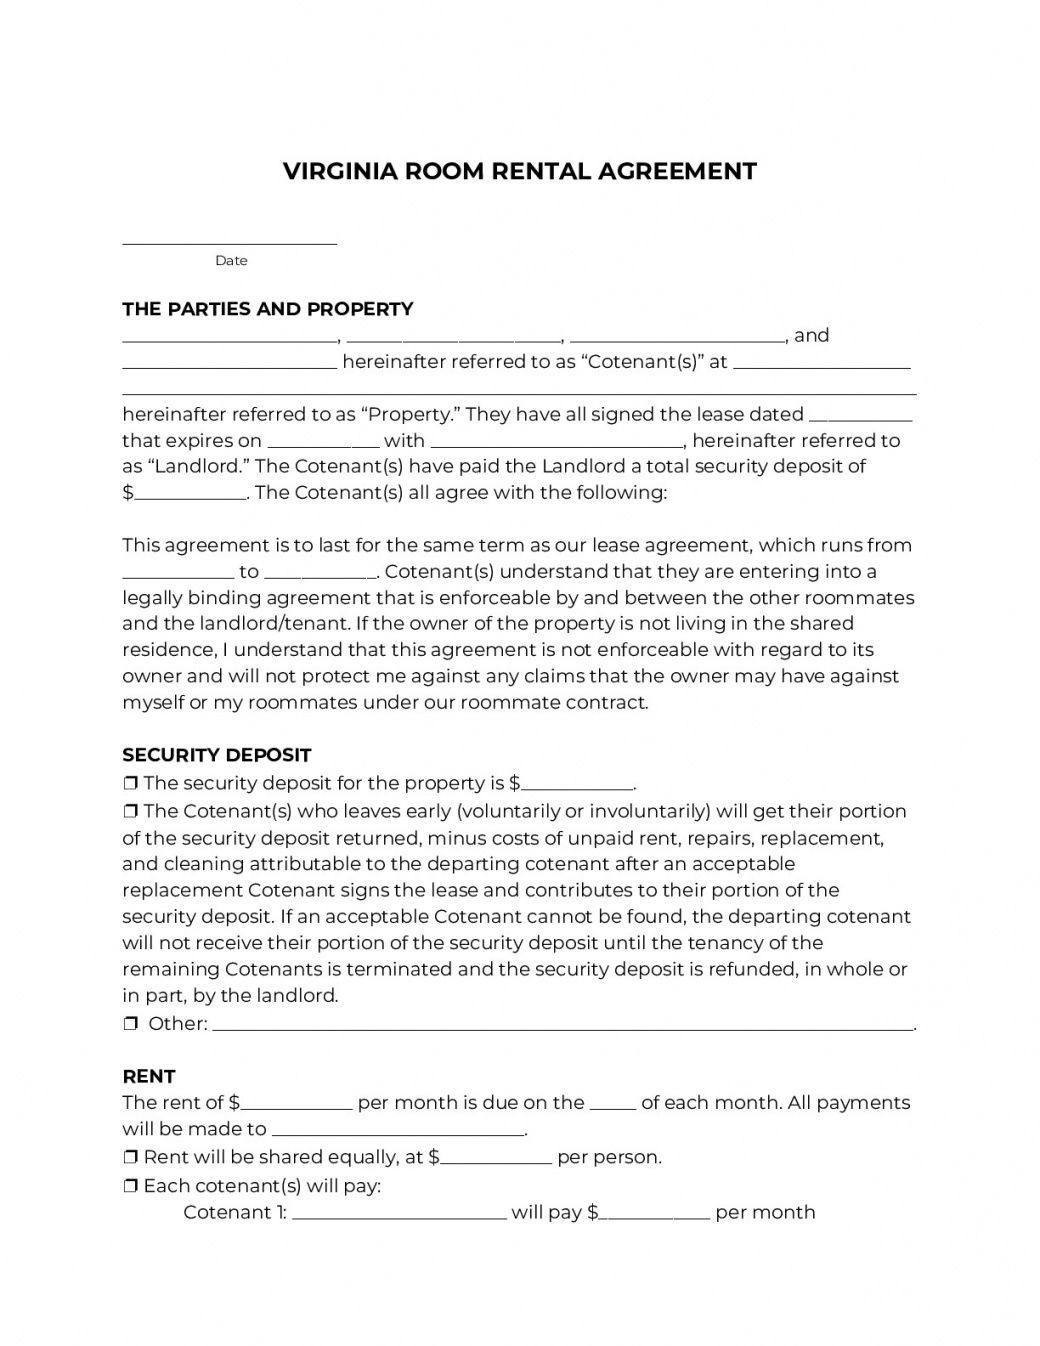 Browse Our Image of Hall Rental Agreement Template in 2020